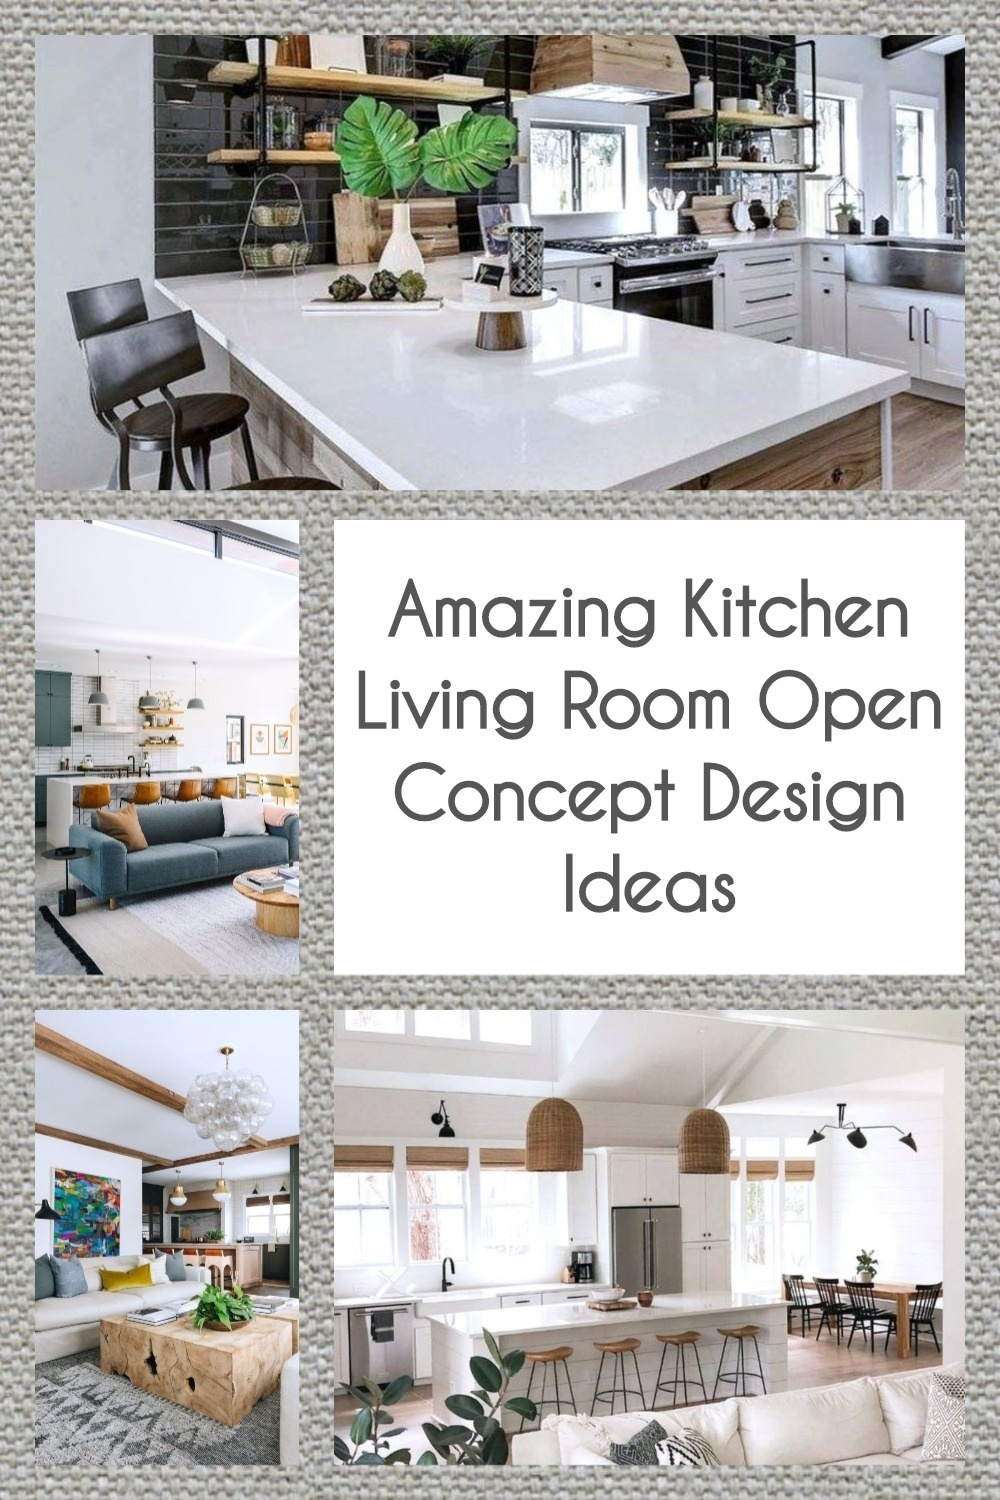 Open Concept Kitchen Living Room Ideas: Amazing Kitchen Living Room Open Concept Design Ideas